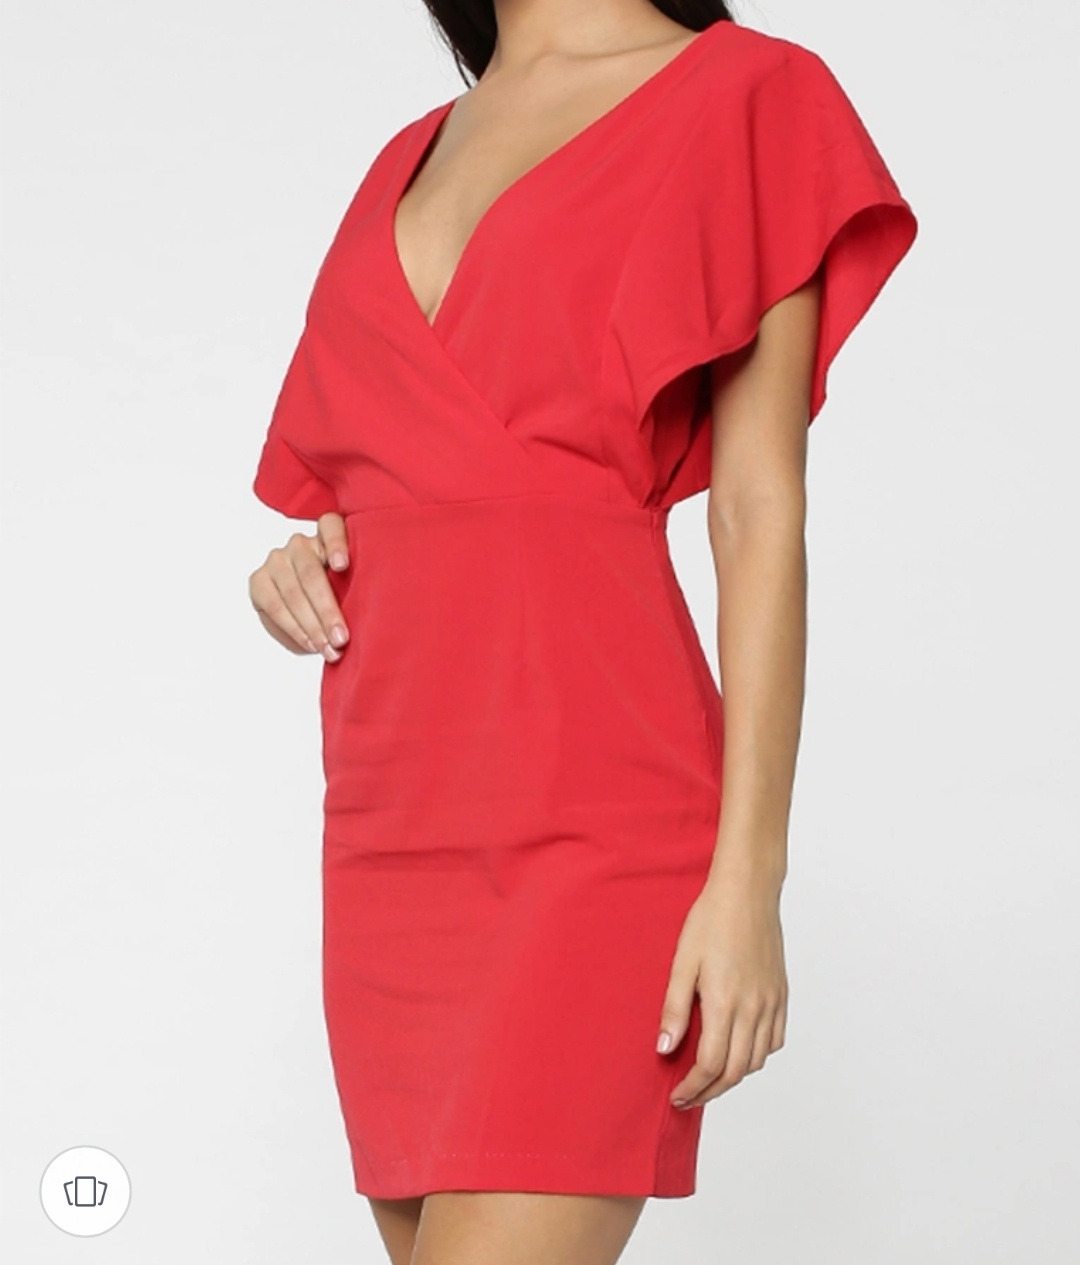 ONLY women's solid red deep plunge neck sheath dress